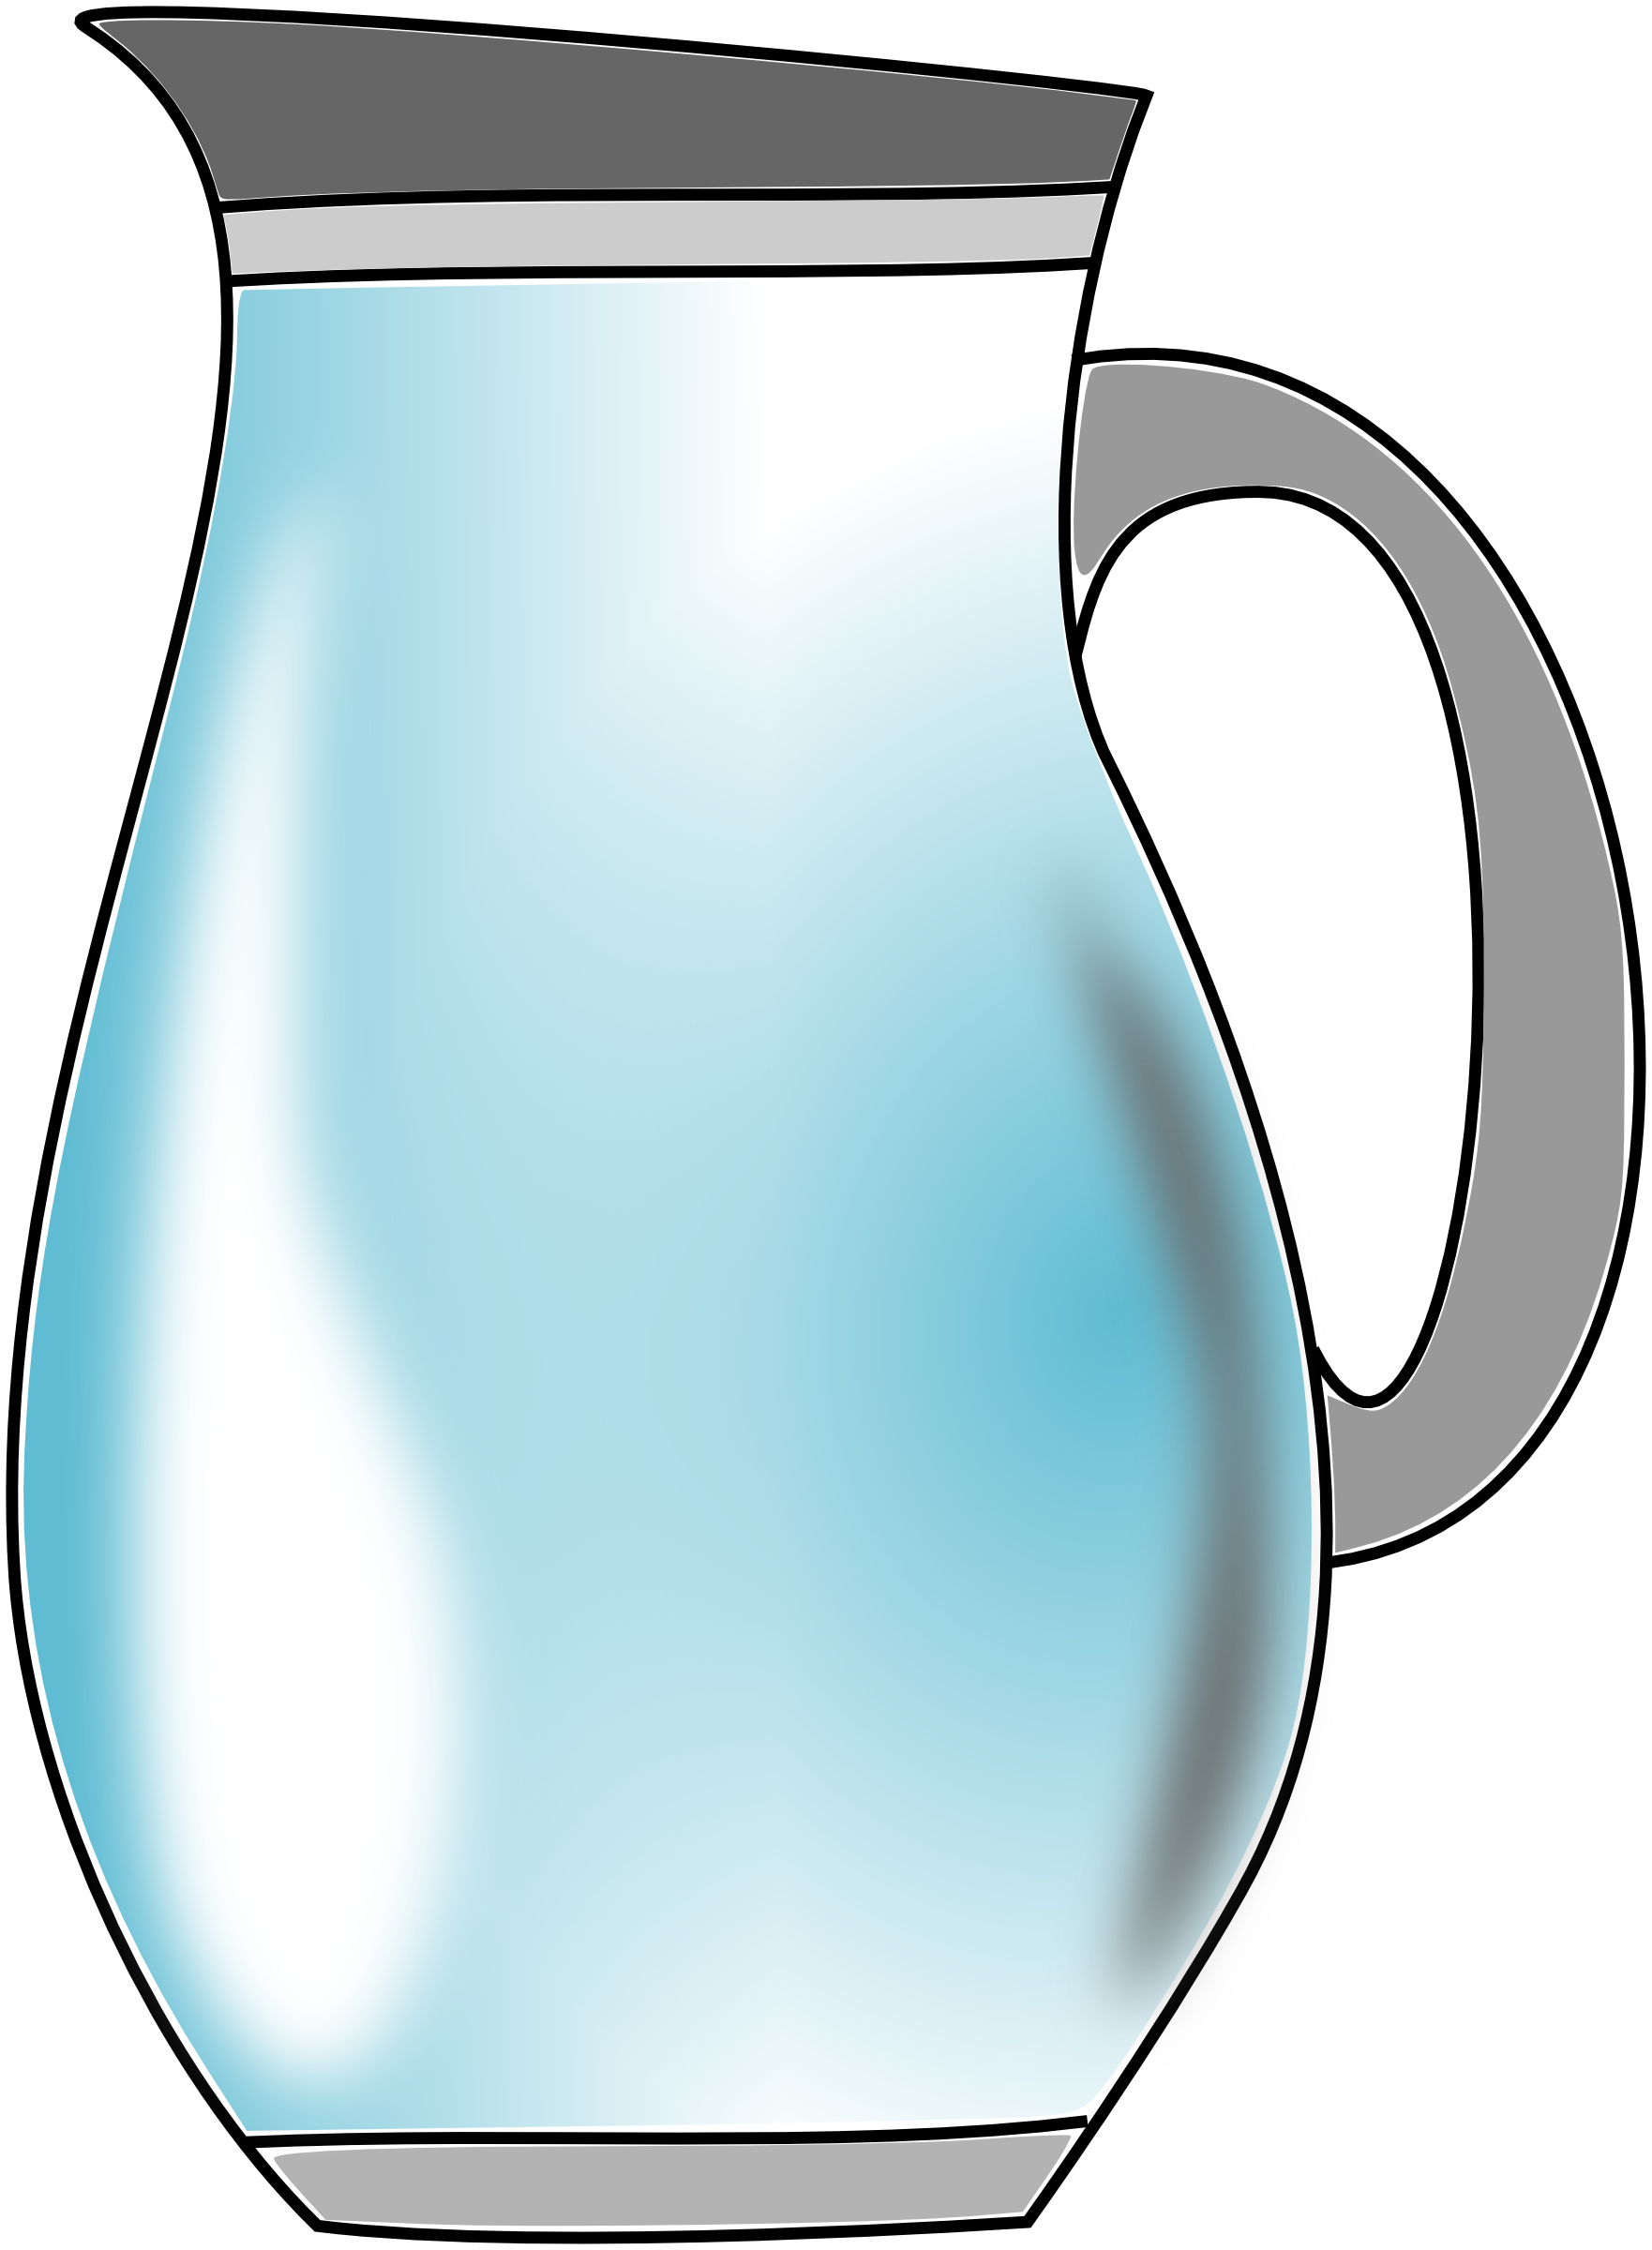 Water Jar Clipart.